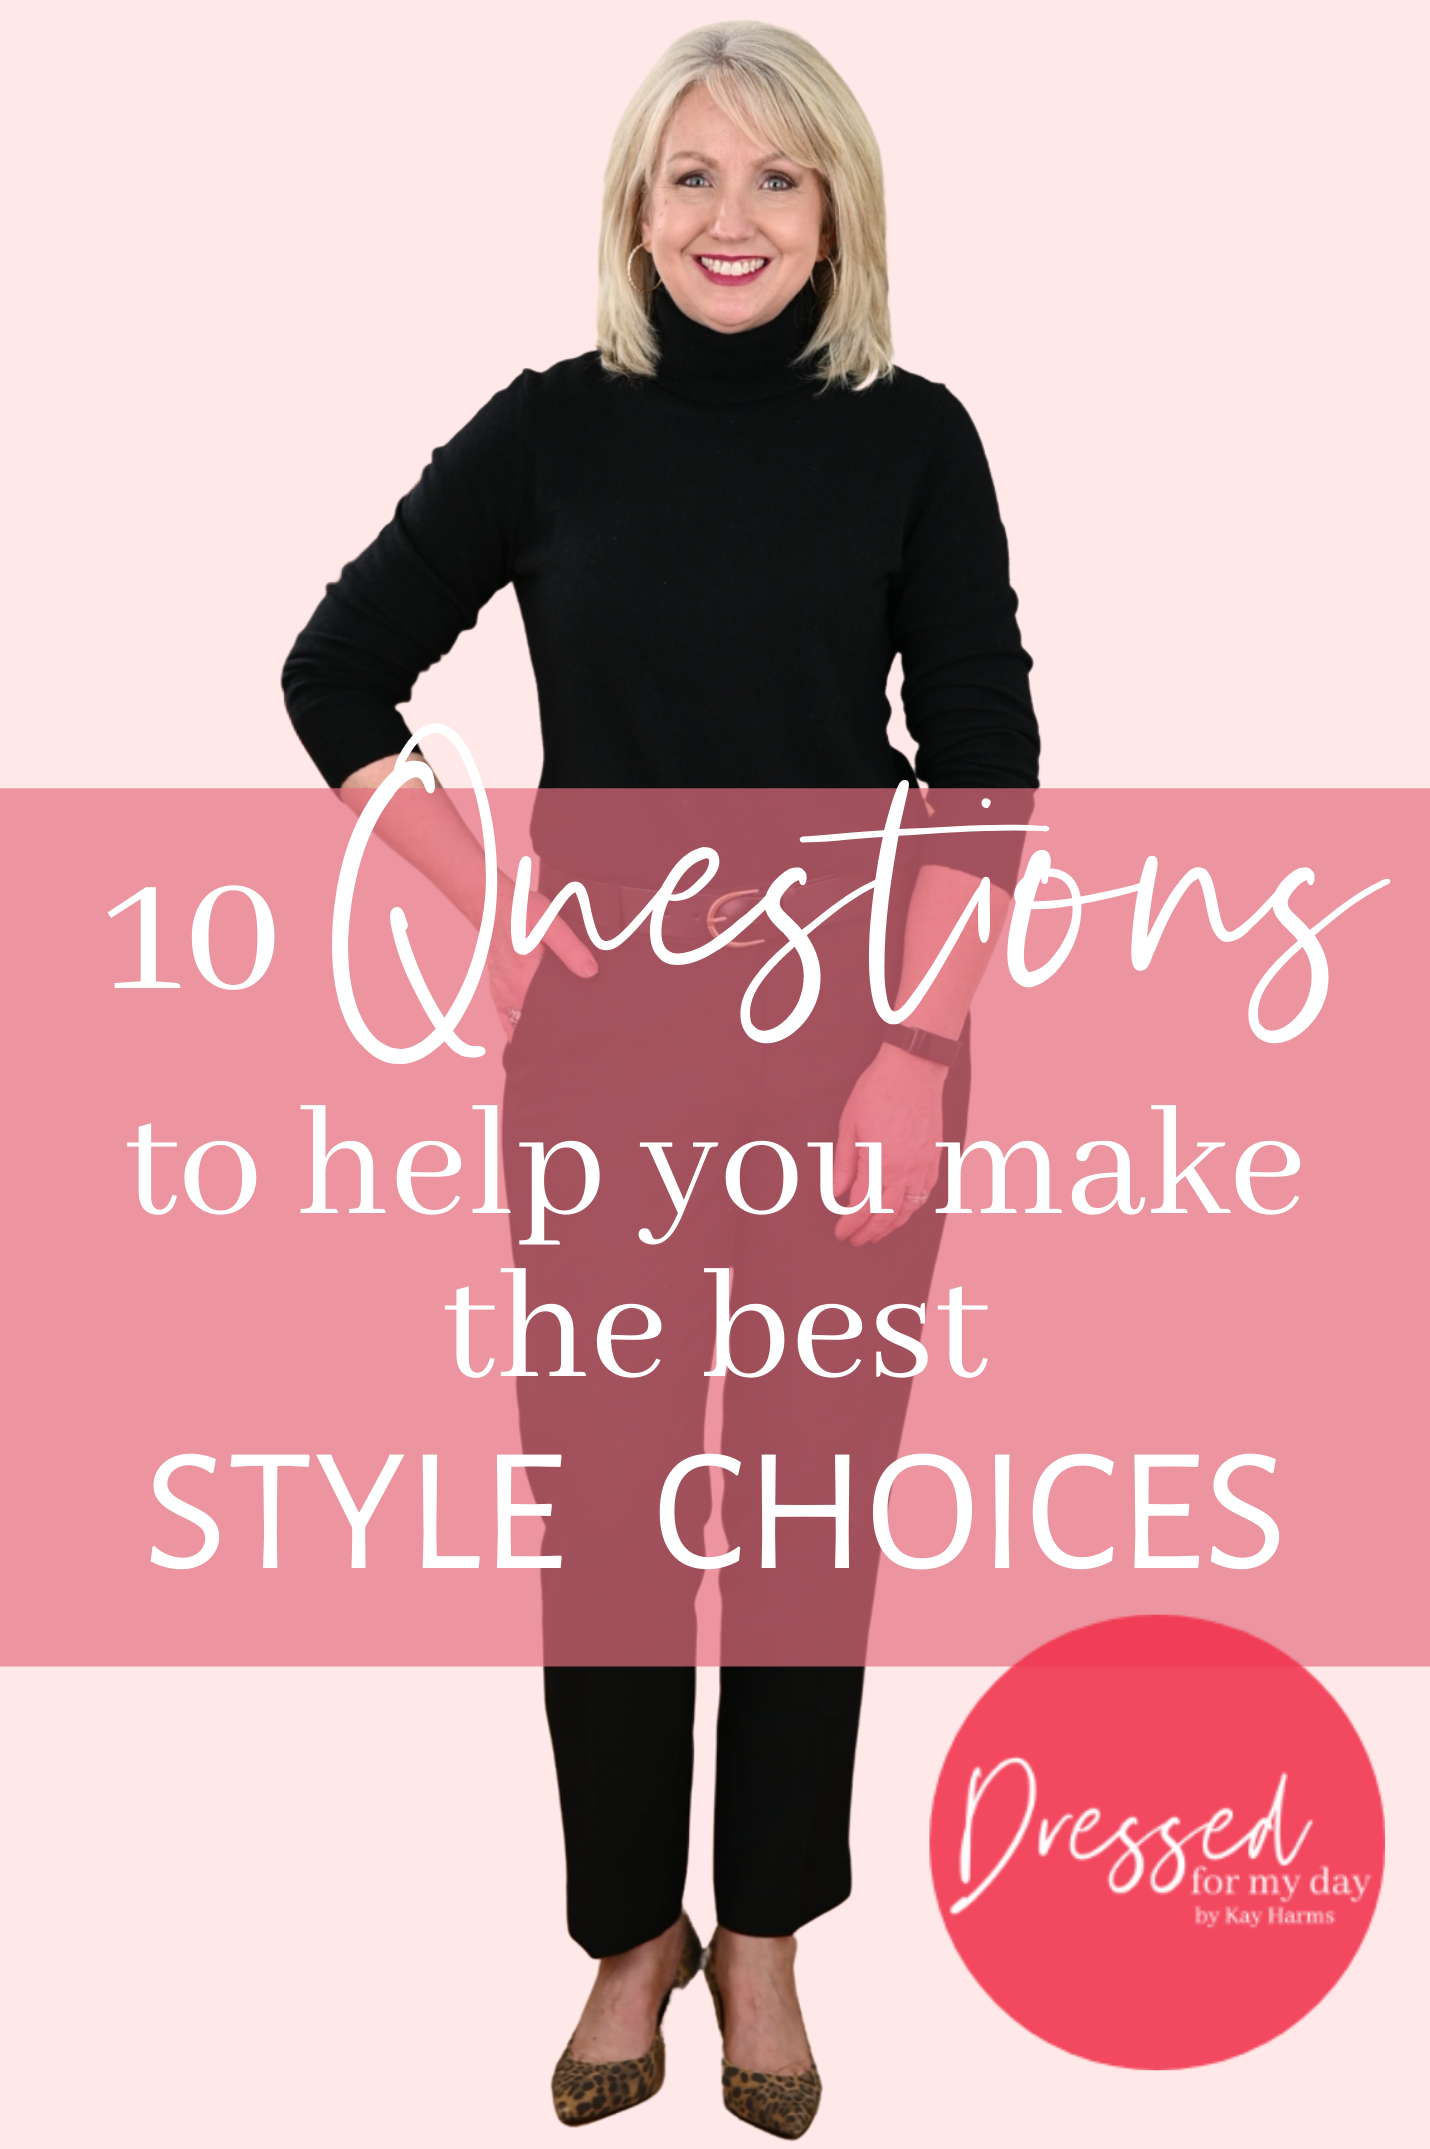 10 Questions to Help You Make the Best Style Choices